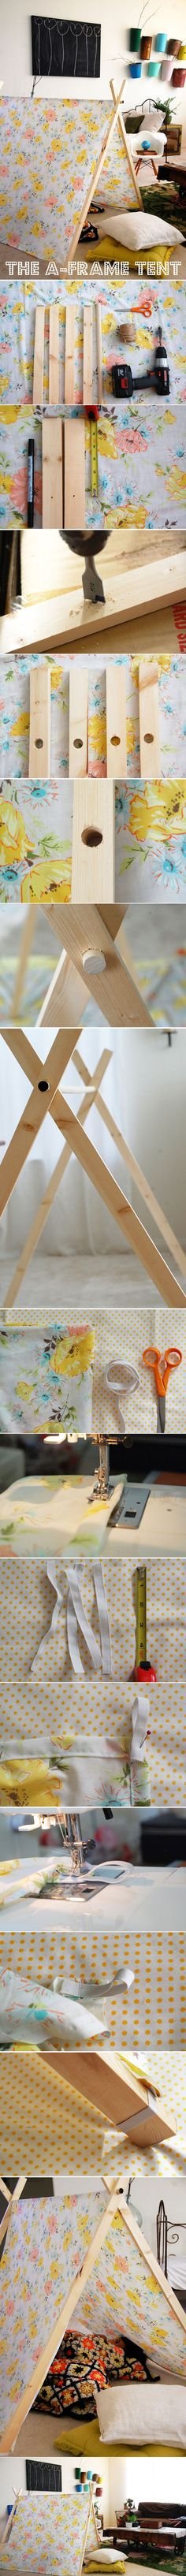 DIY tent! I love this, its so stinkin cute!